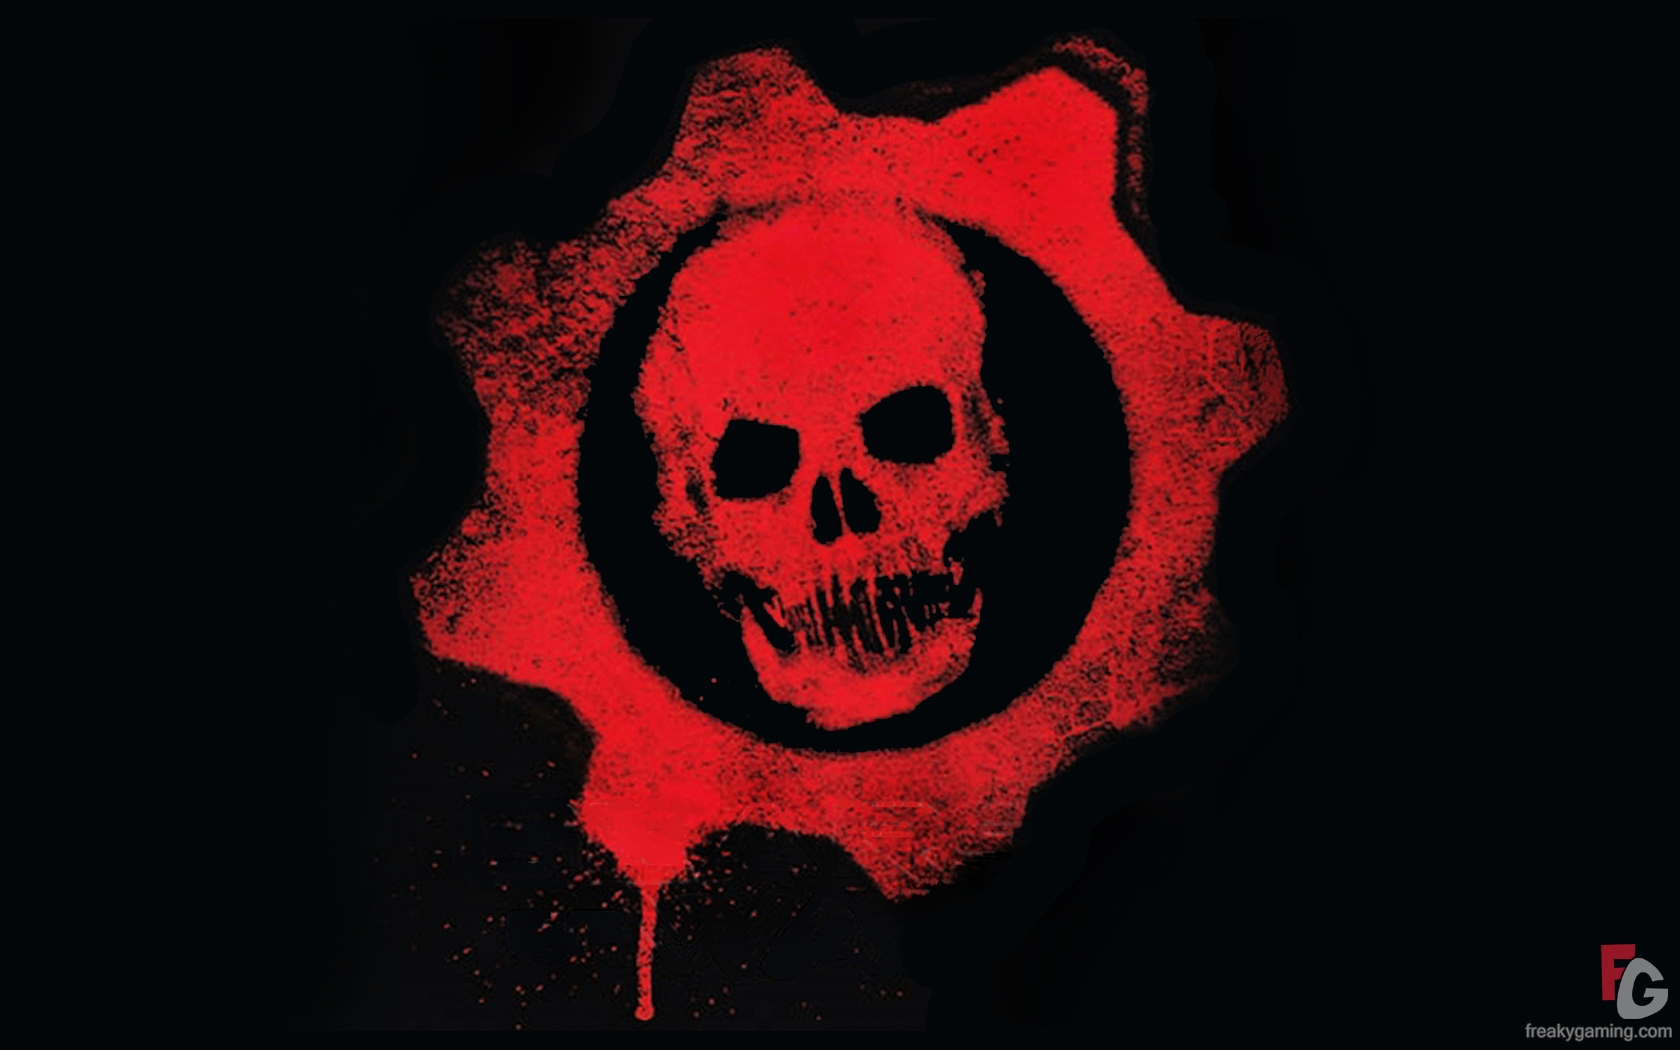 ICXM.net - Gears of War: Ultimate Edition leaked by Brazil's rating board